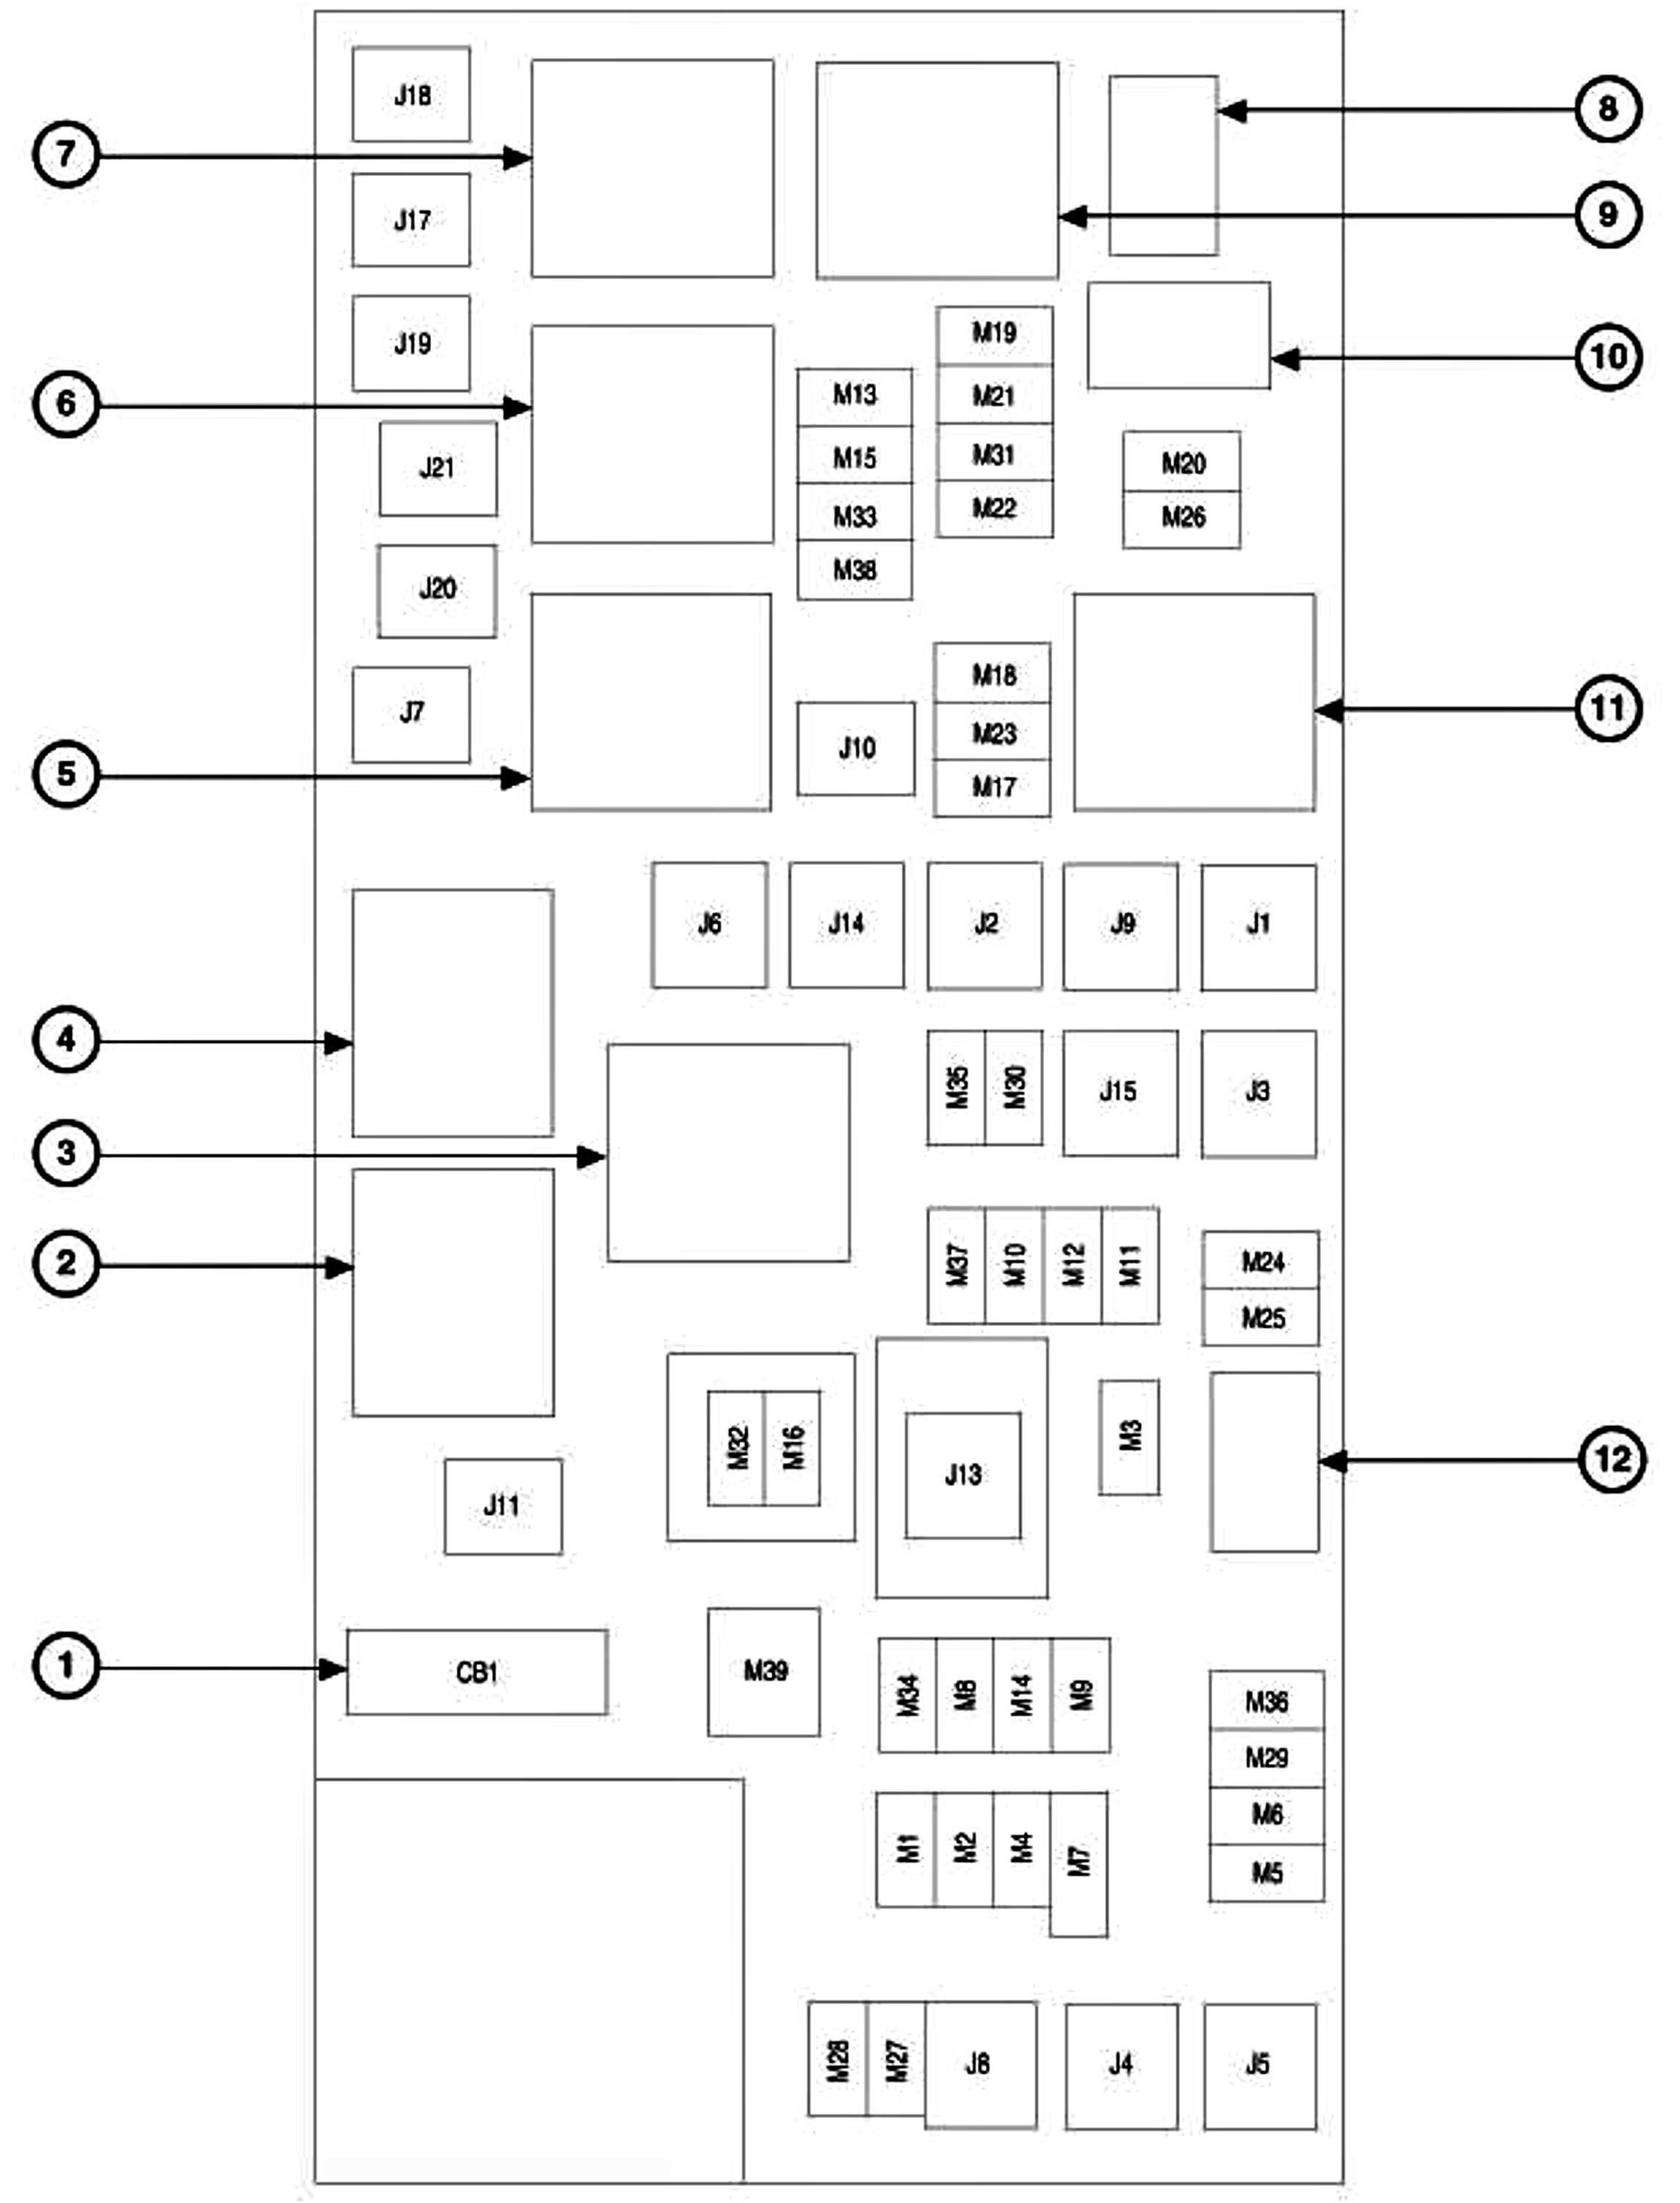 f65dad757704258fddc82721f010e9f2 2006 jeep commander fuse box diagram jpeg carimagescolay 2007 jeep commander fuse box diagram at crackthecode.co